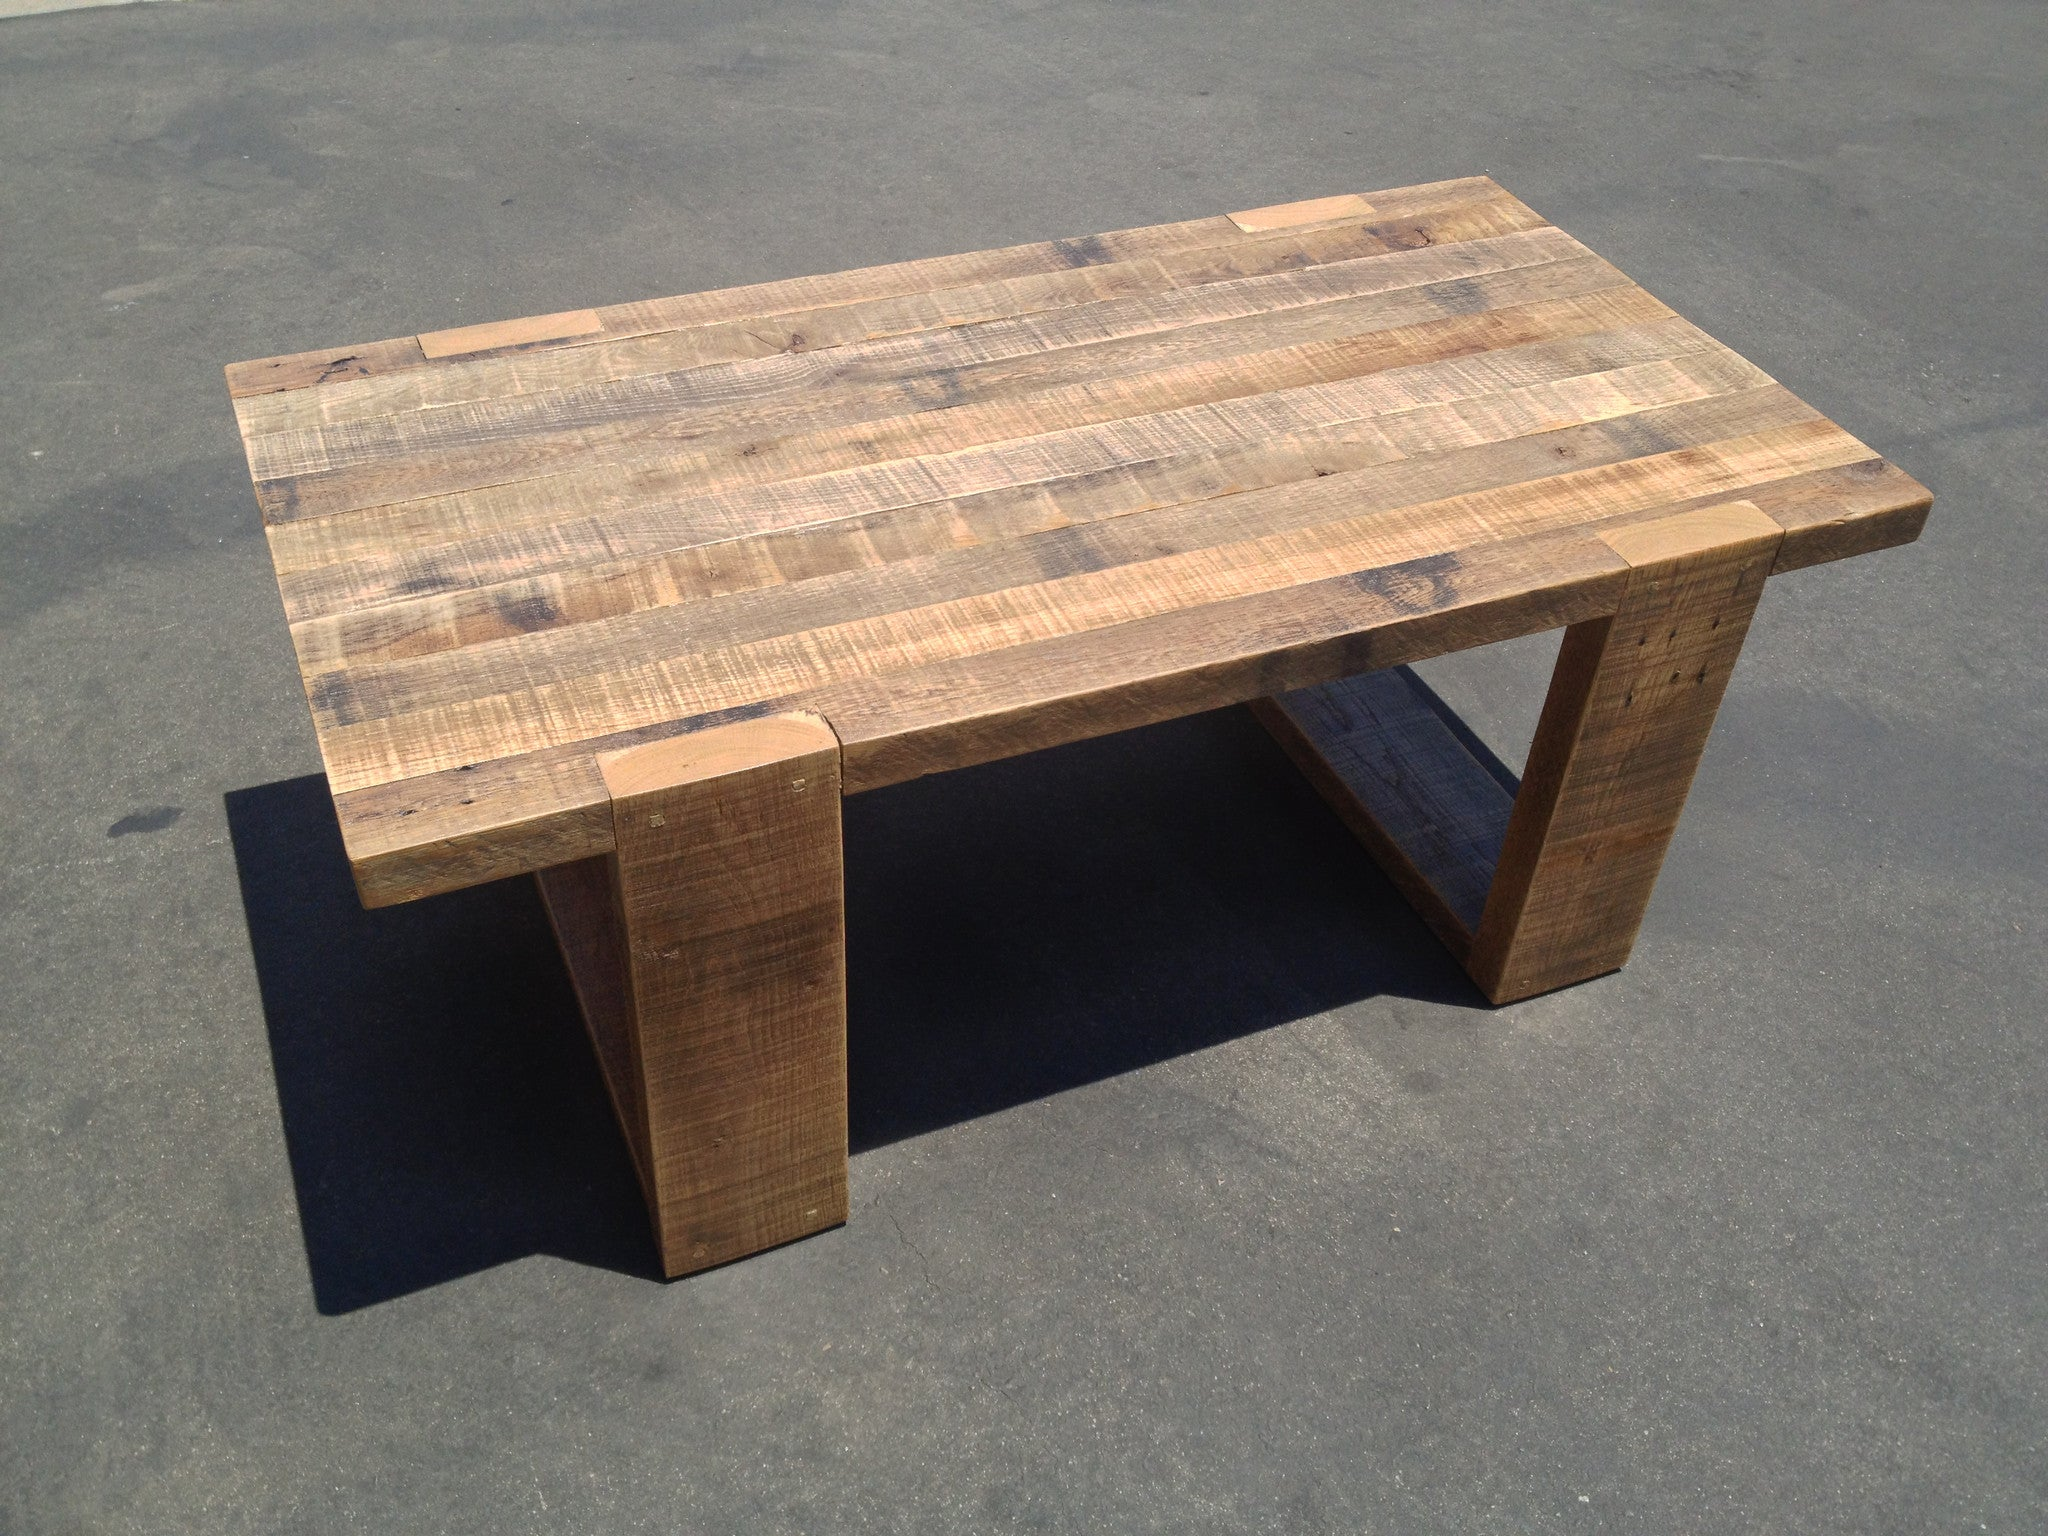 Reclaimed Oak Coffee Table – Heirlooms and Hardware